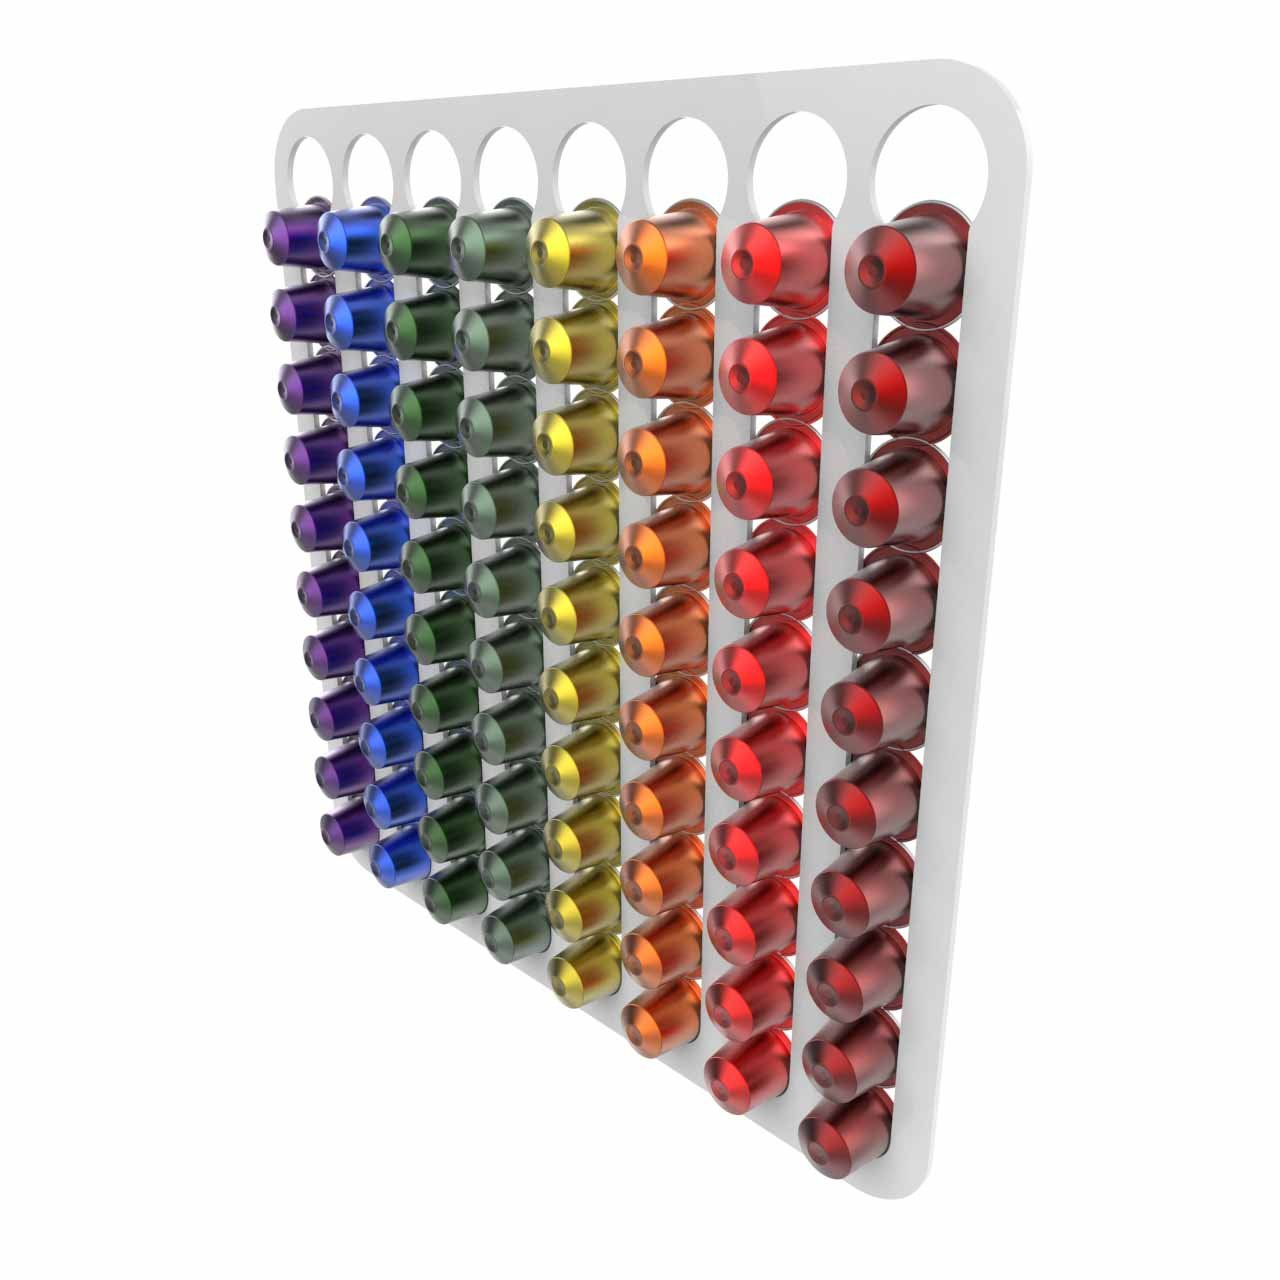 Nespresso coffee capsule pod holder wall mounted holds 80 capsules, Free Trolley Token Material Sample Included per Shipment (Black) Expression Products